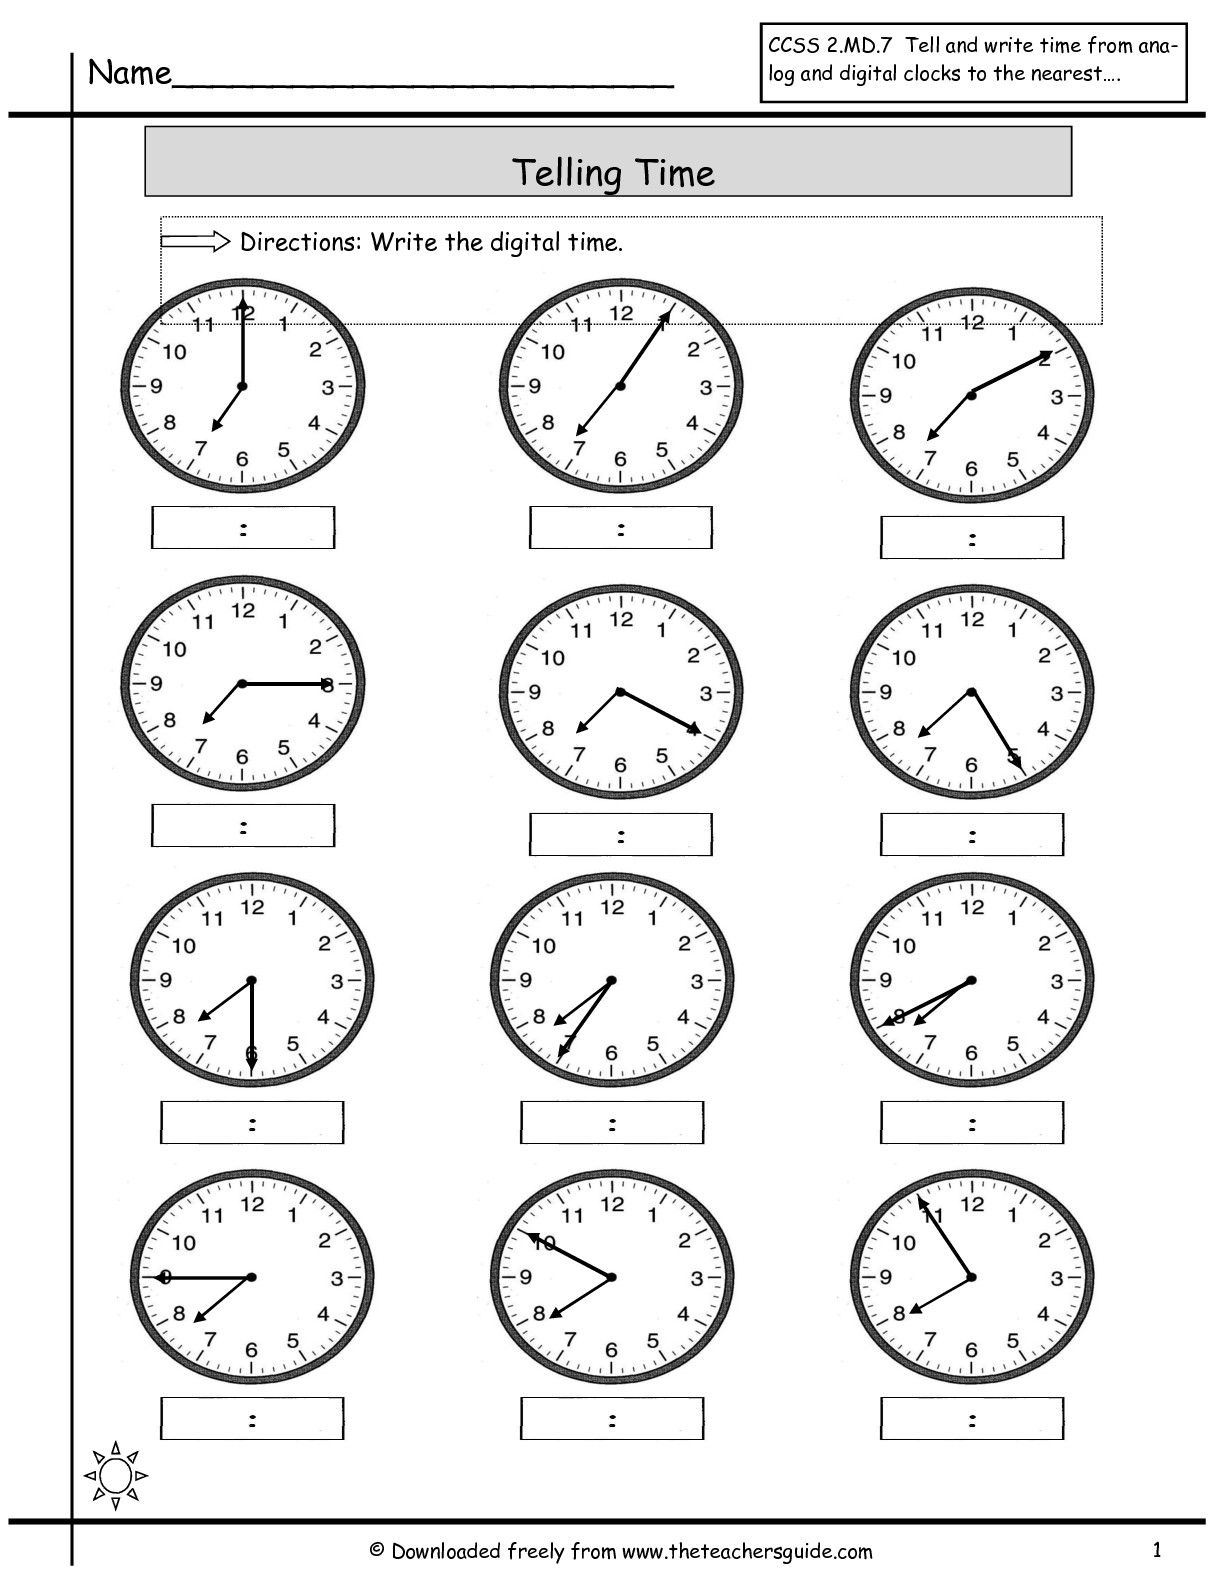 worksheet Digital Clock Worksheets kids are asked to read the hands on clocks and write correct time down